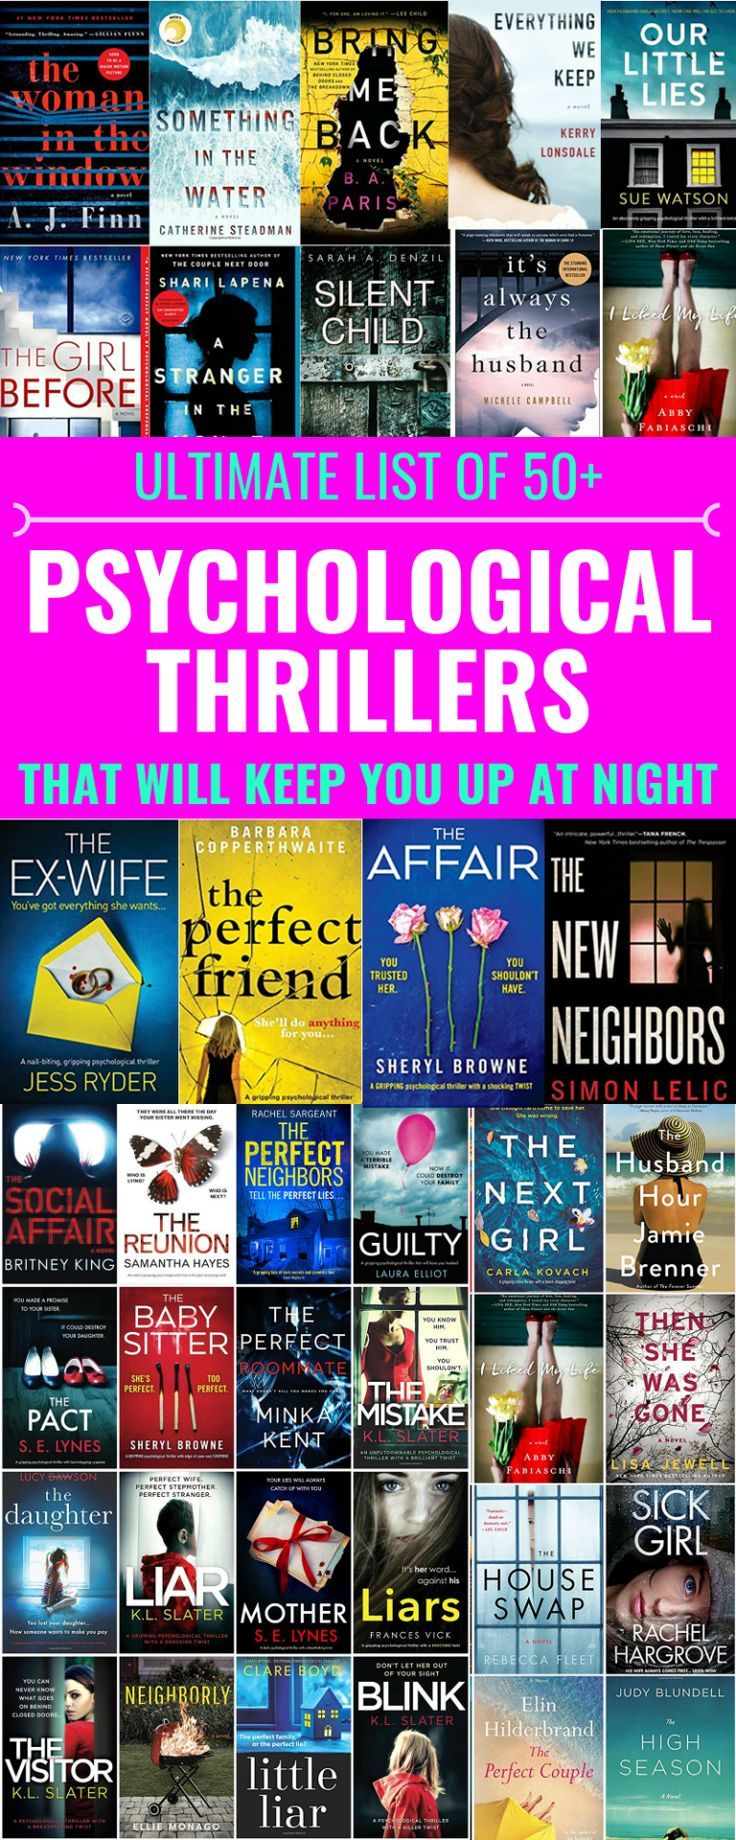 Ultimate List Of 50+ Psychological Thrillers To Read is part of Thriller books psychological, Good thriller books, Best psychological thrillers books, Psychological thrillers, Thriller books, Books for teens - Ultimate List Of 50+ Psychological Thrillers To Read  The ultimate list of 50+ mustread psychological thriller books that will keep you up at night!